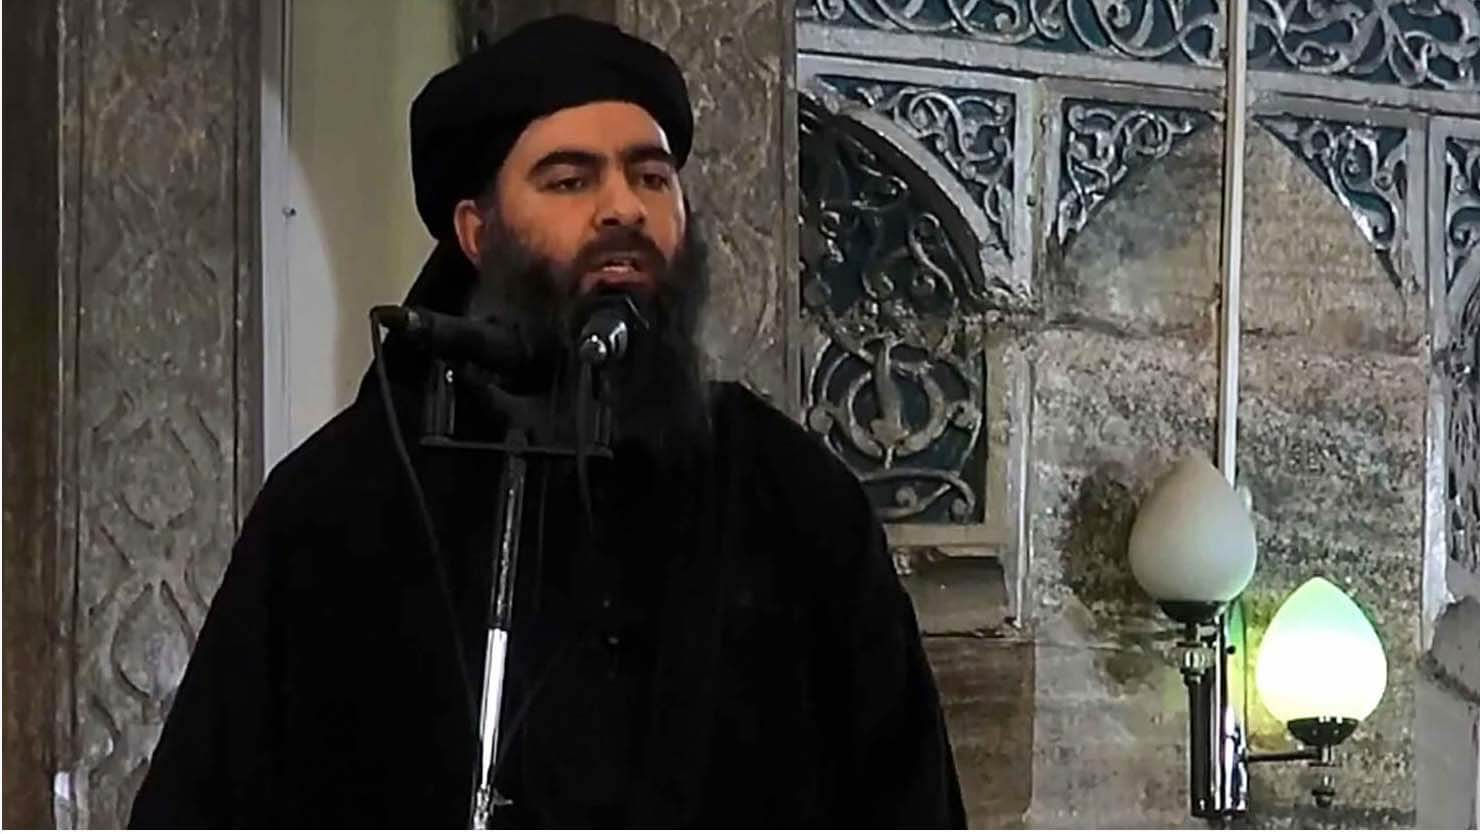 Wanted Dead Or Alive: The Frustrating, Failing Hunt For ISIS Leader Baghdadi